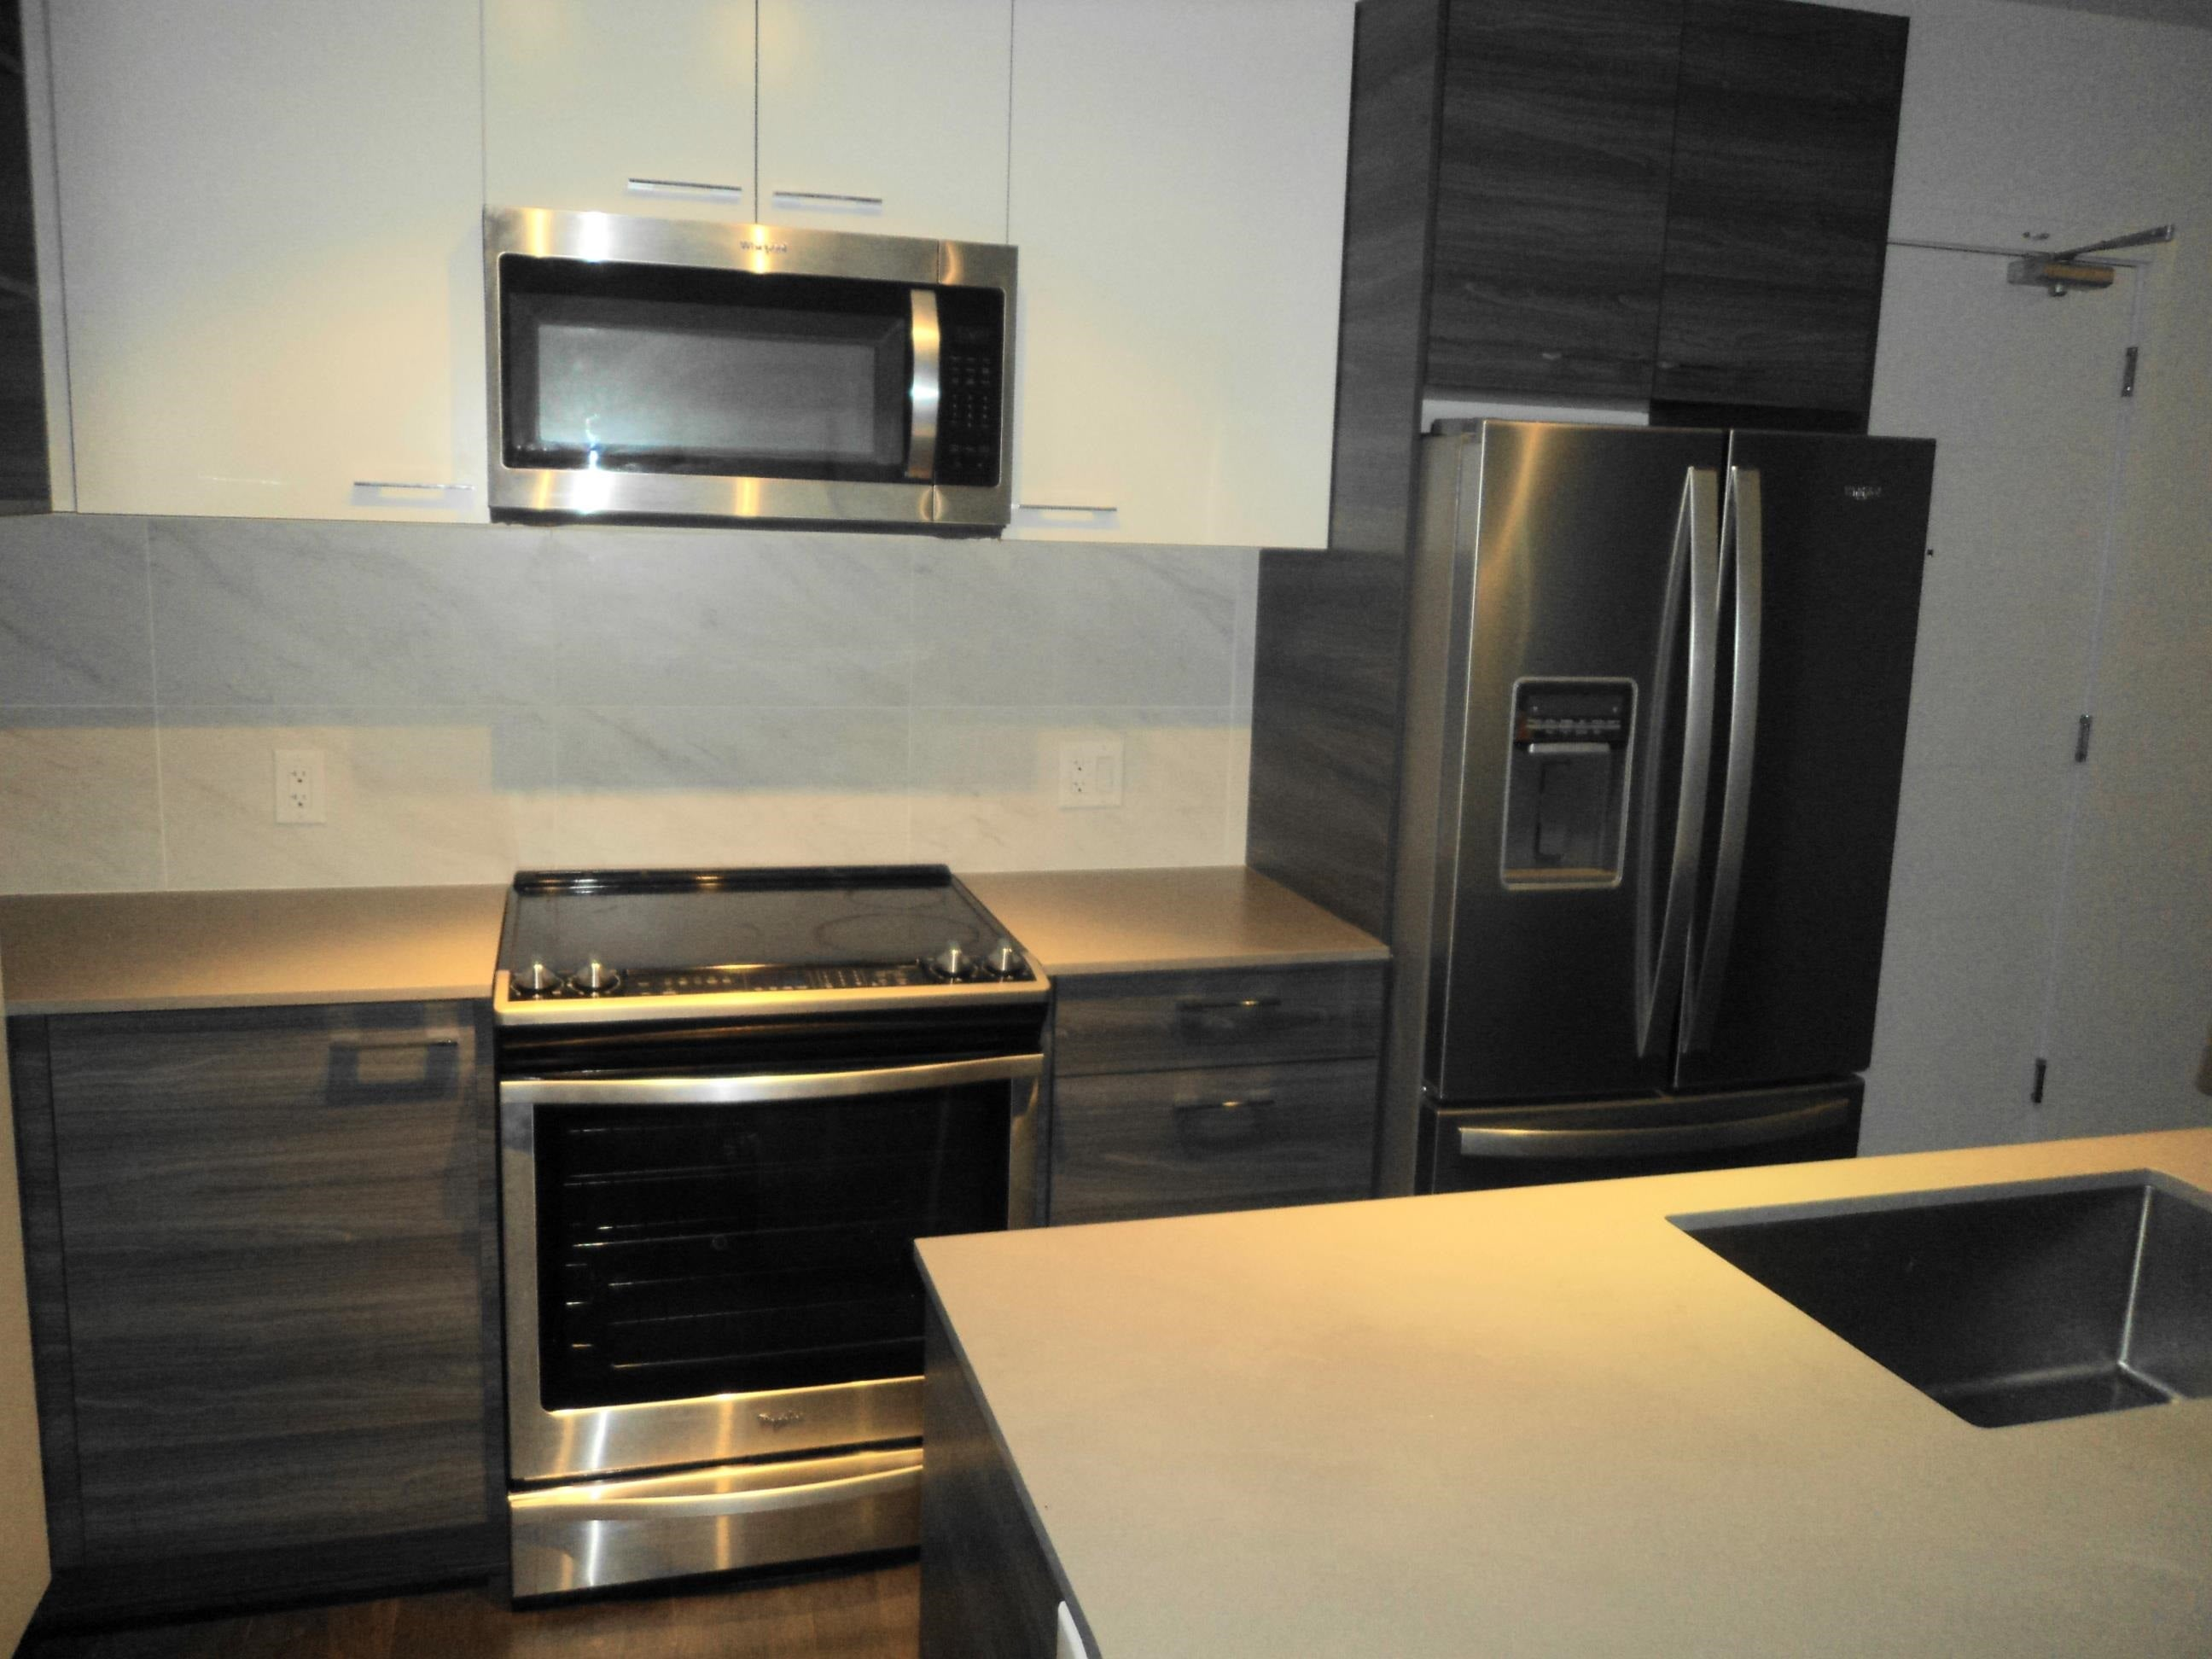 207 10581 140 STREET - Whalley Apartment/Condo for sale, 2 Bedrooms (R2615061) - #7